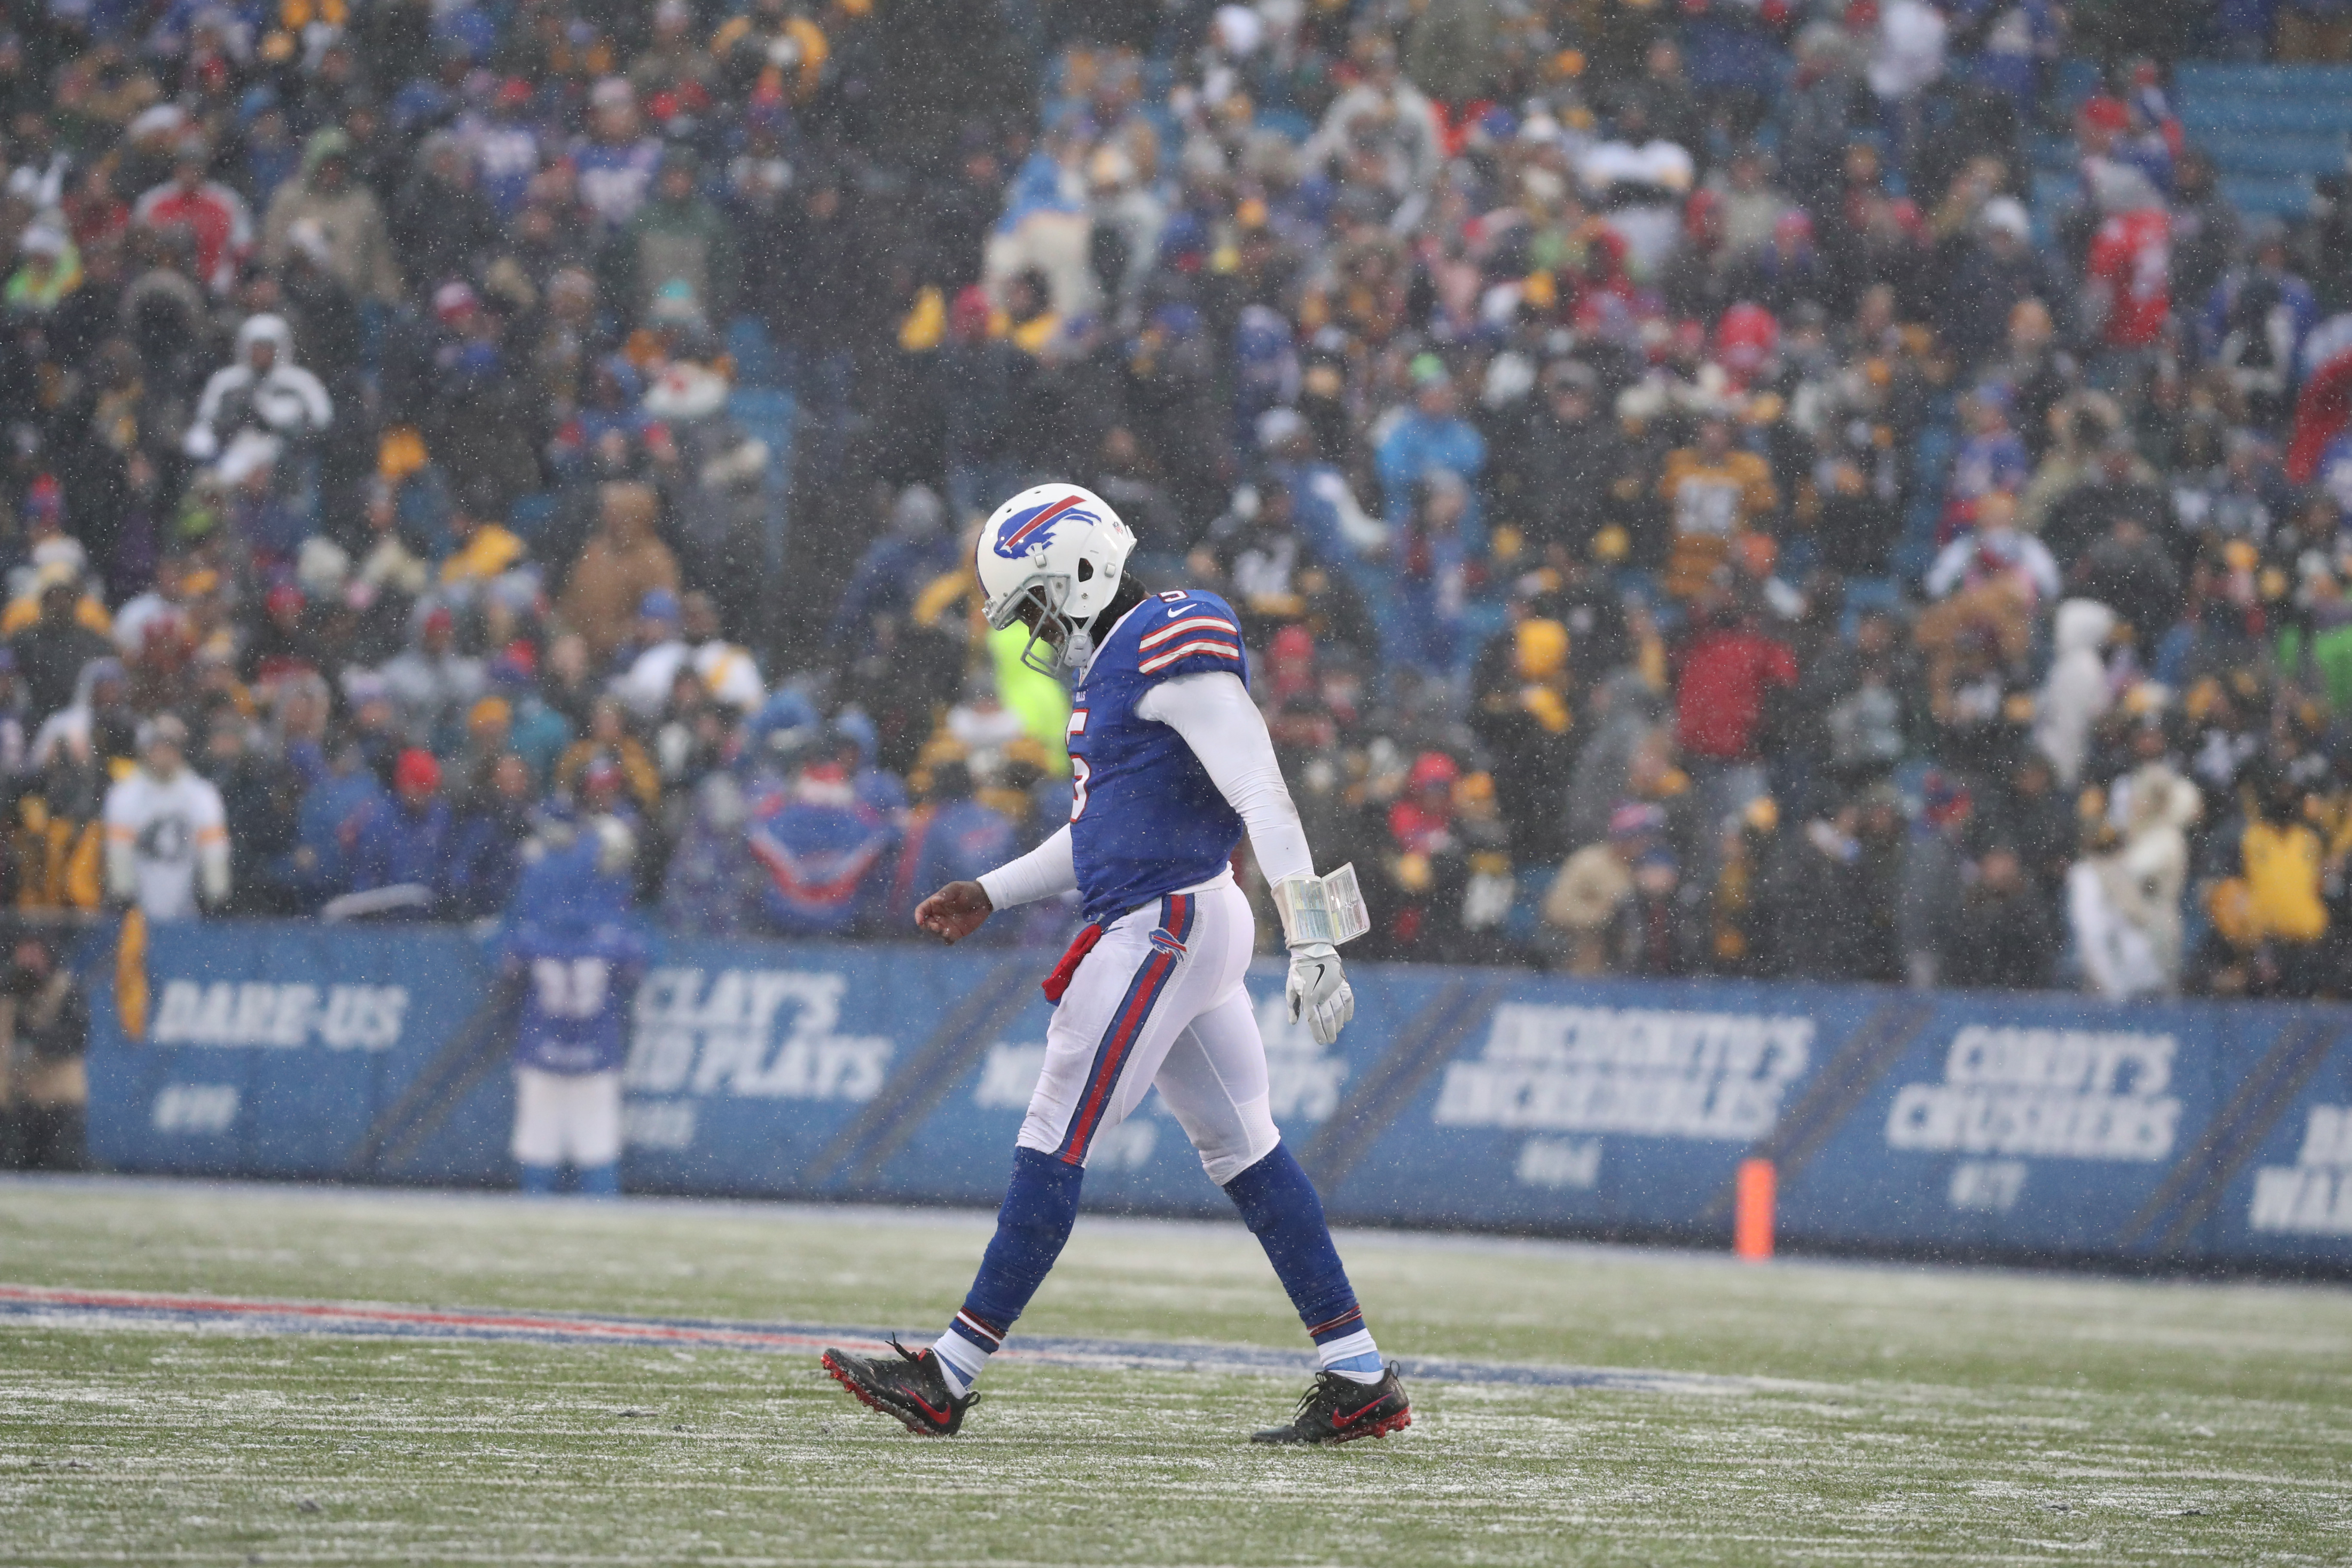 Buffalo Bills quarterback Tyrod Taylor (5) walks off the field after a three-and-out in the fourth quarter against the Steelers on Dec. 11, 2016.  (James P. McCoy/Buffalo News)